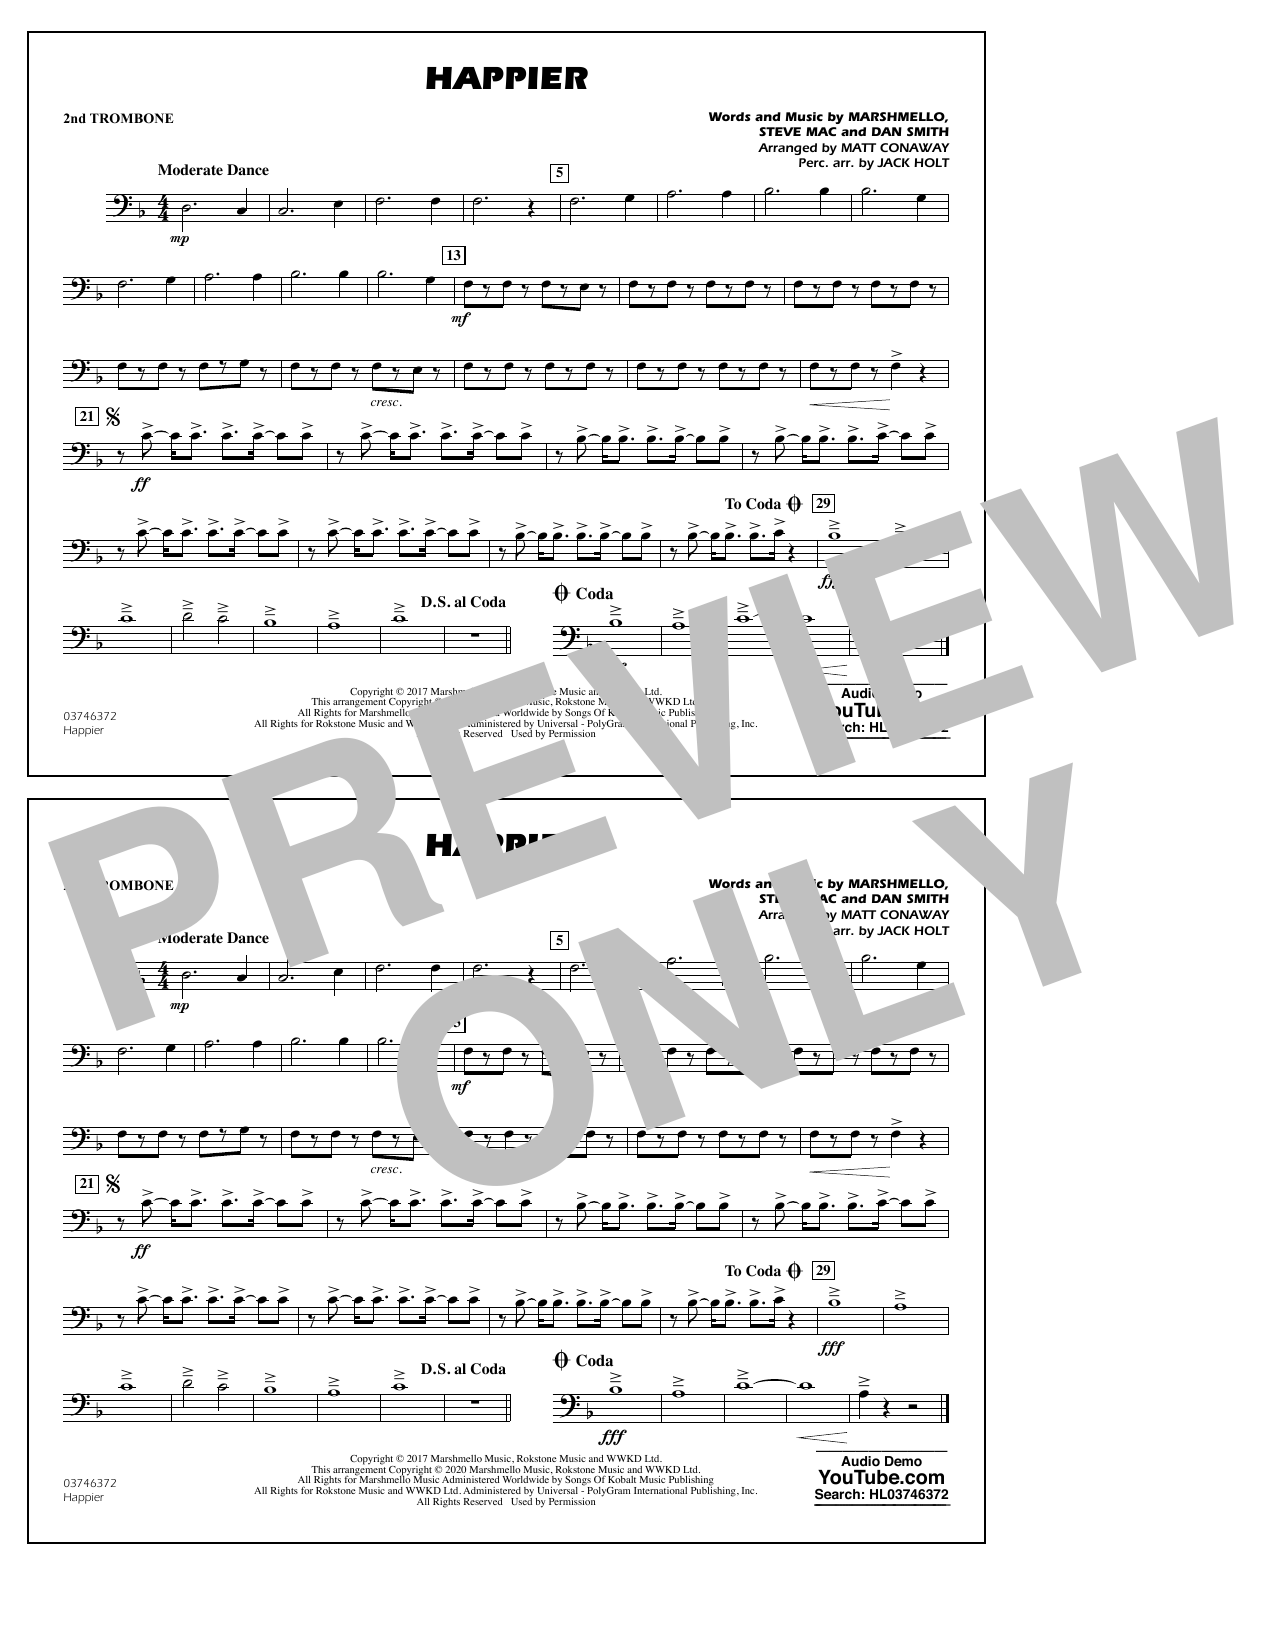 Happier (arr. Matt Conaway and Jack Holt) - 2nd Trombone Sheet Music